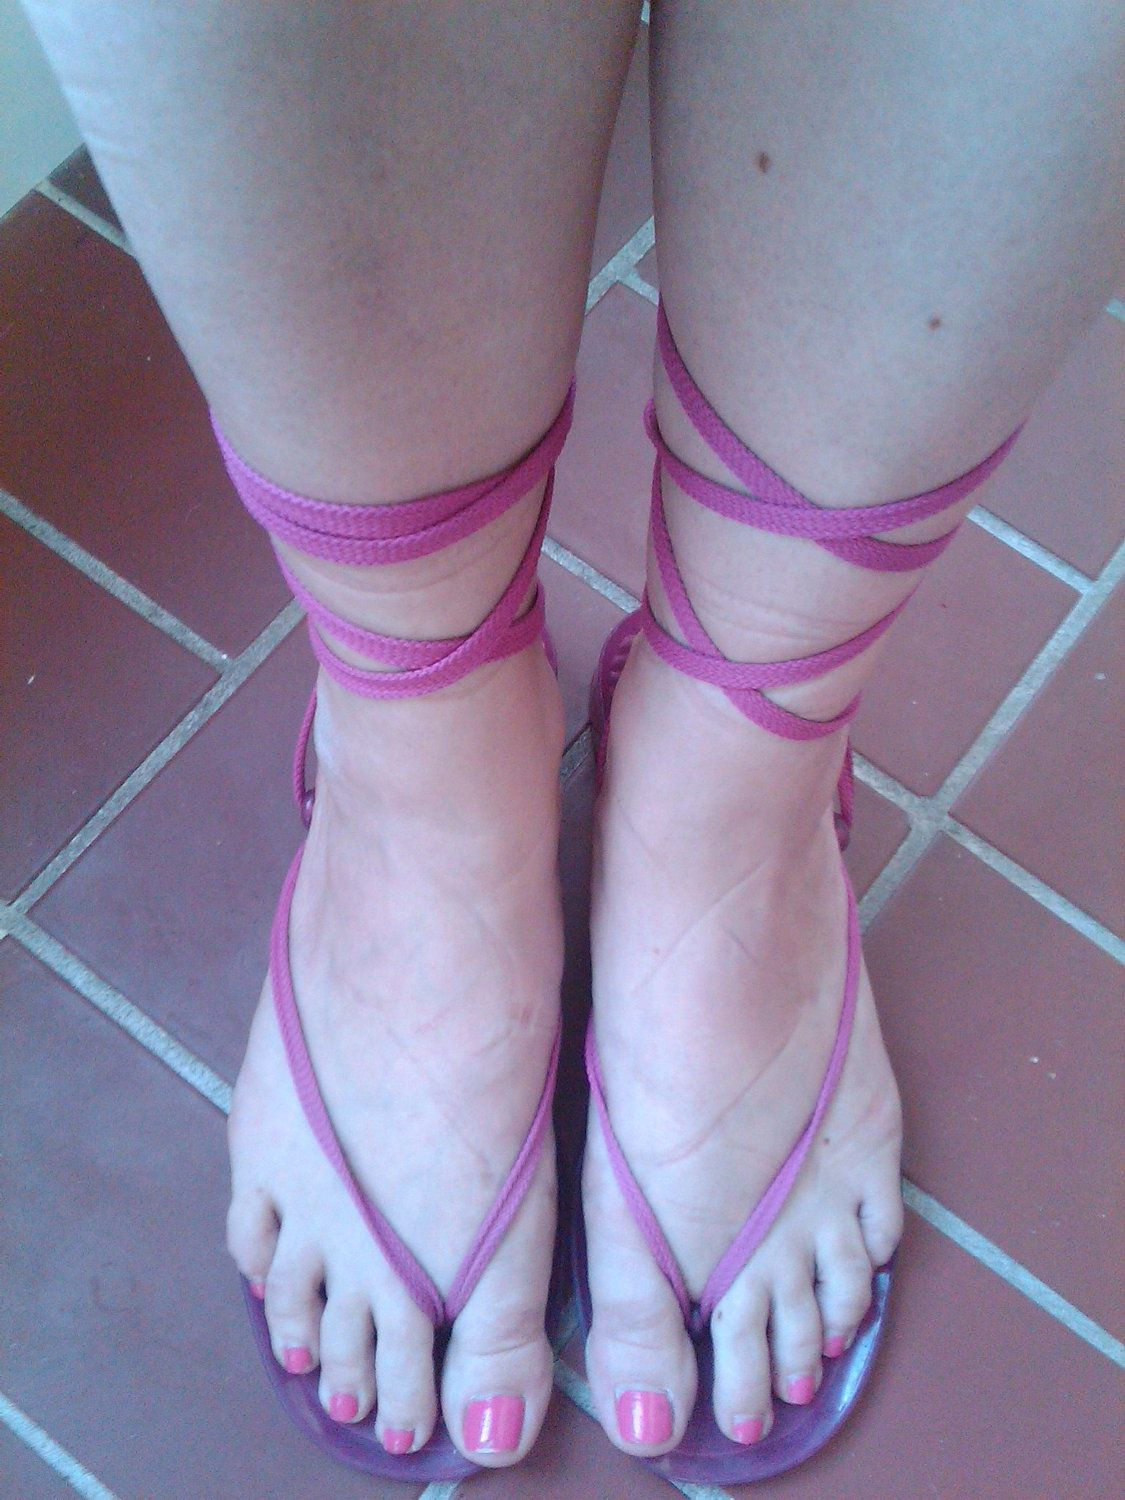 a63a7639f1e was 17.50 80s Gladiator LaCe Up JeLLy Sandals....sz 9.5 and Clean ...